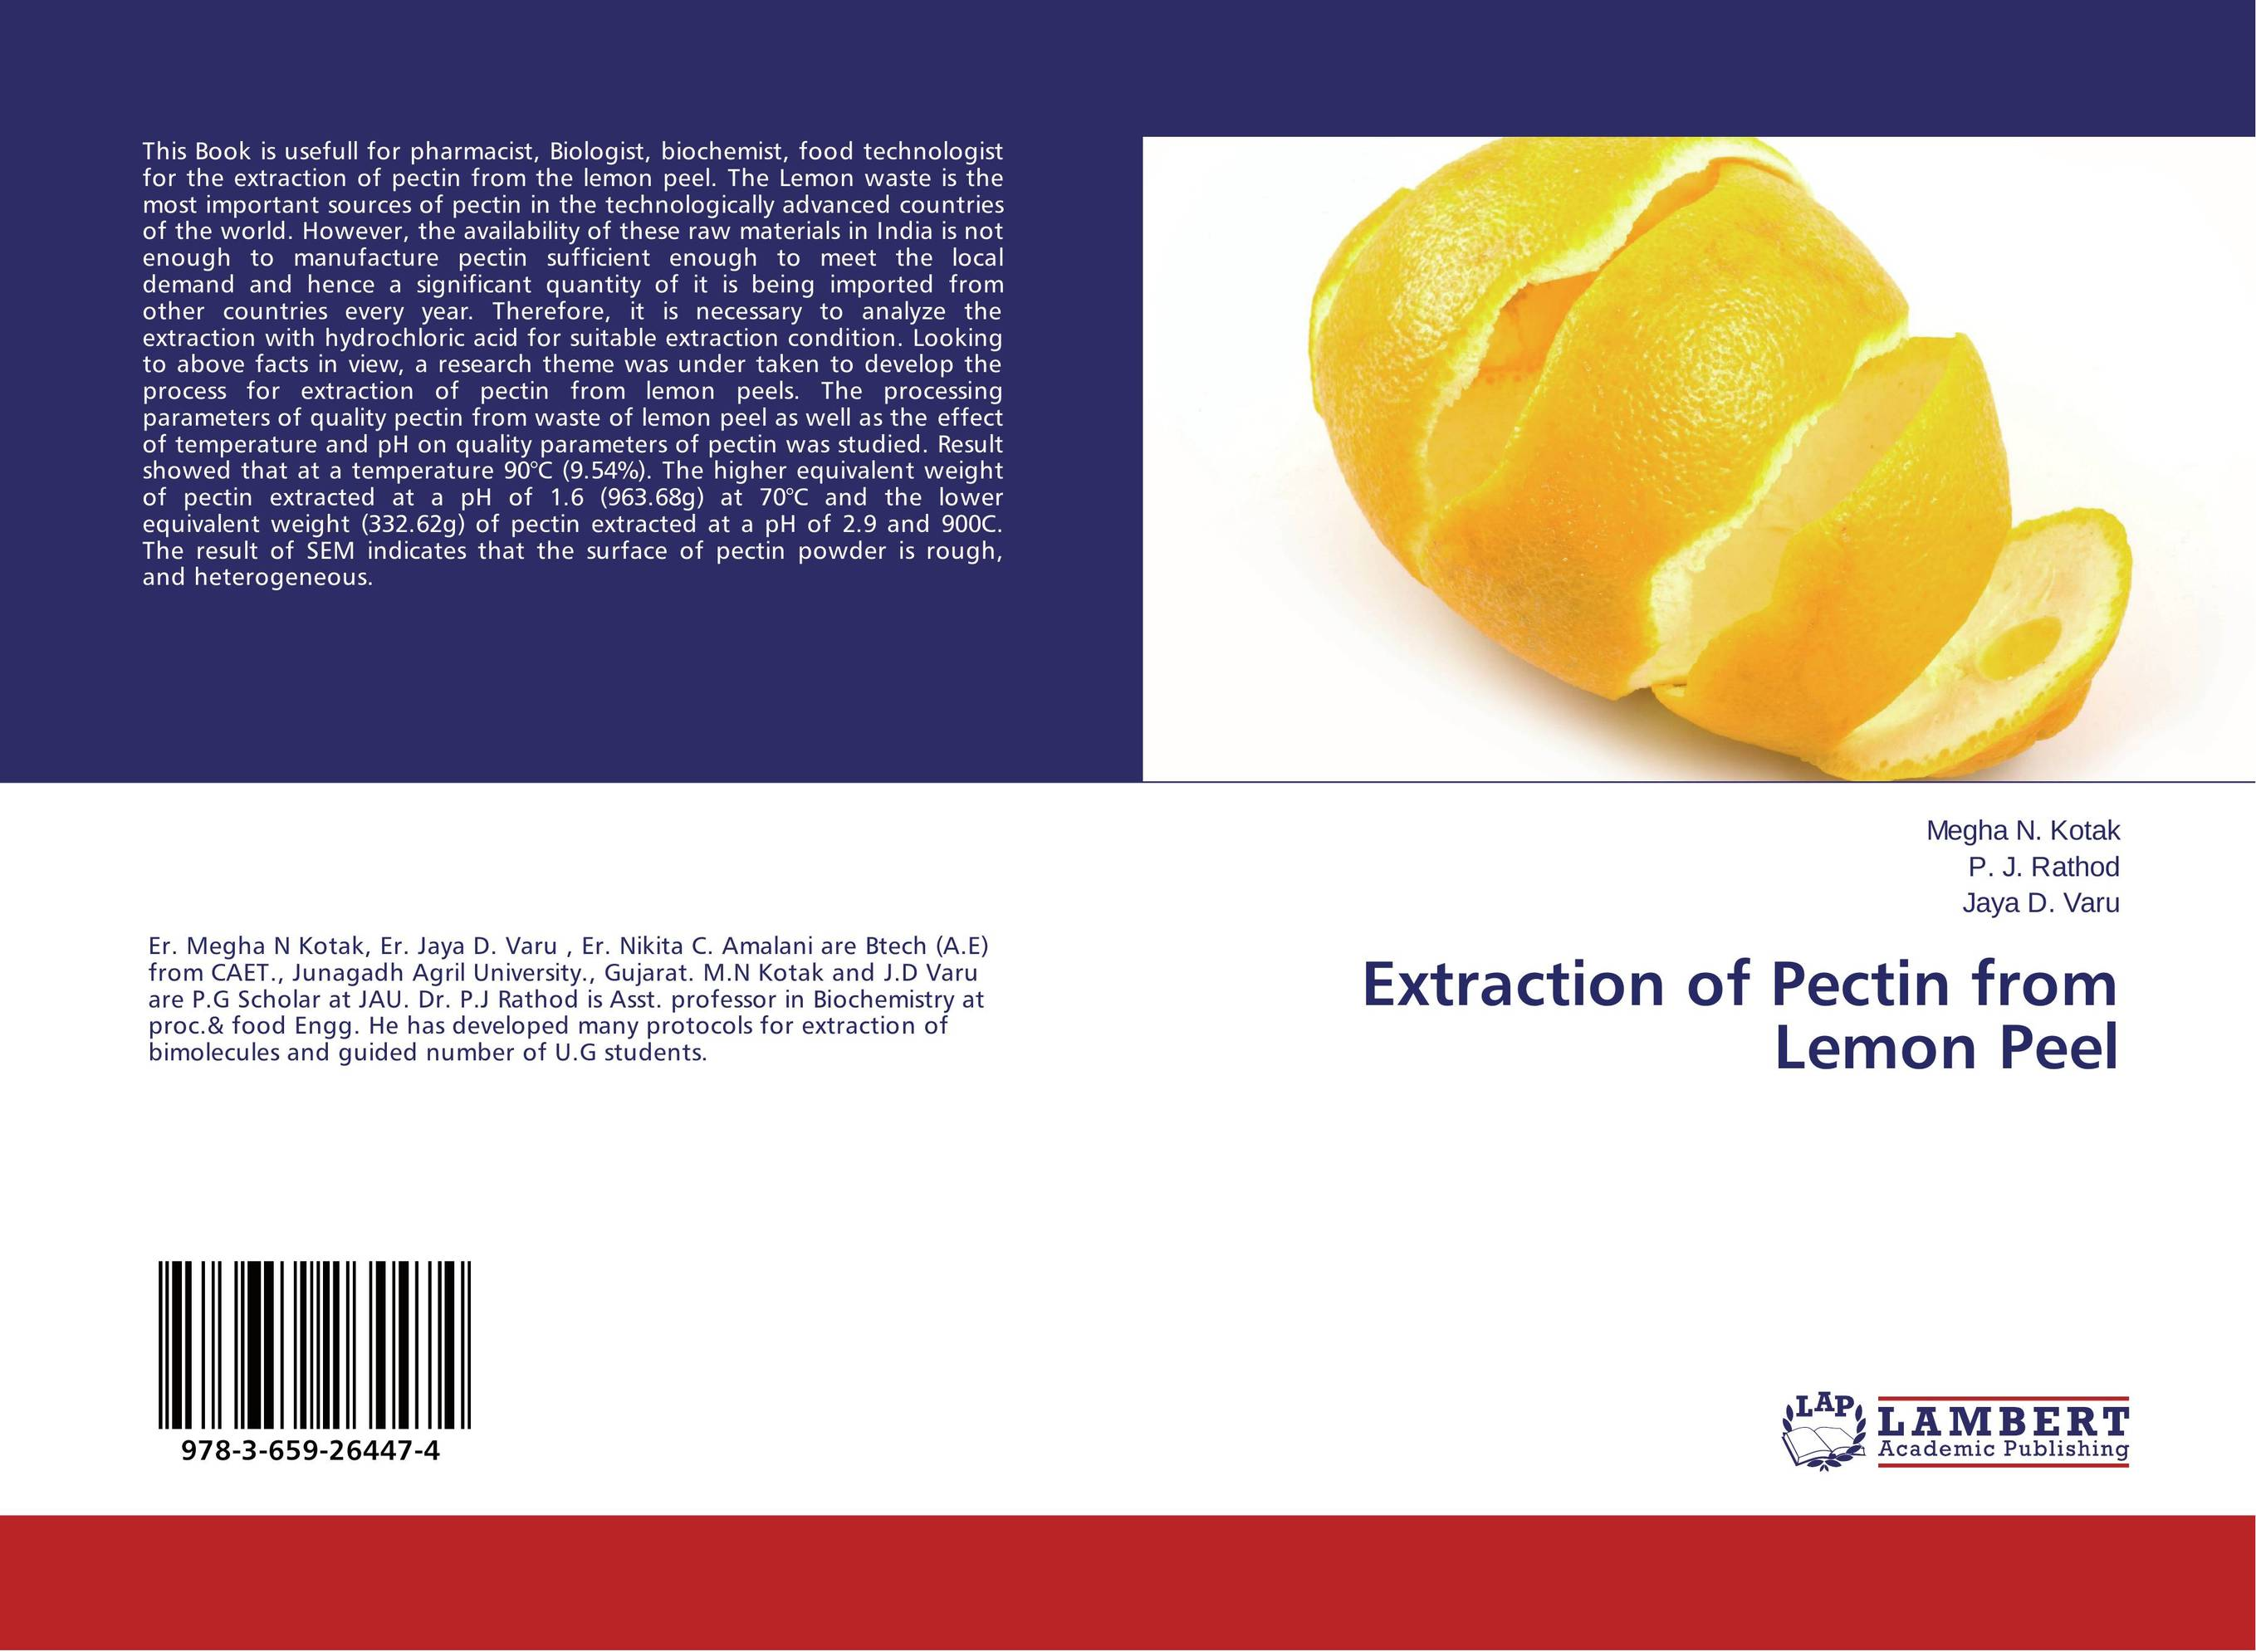 the extraction of pectin from orange Orange peels followed by the time of extraction and the ph values of the acidic solution used for the extraction of pectin the orange peels are sun dried till their moisture content is negligible.